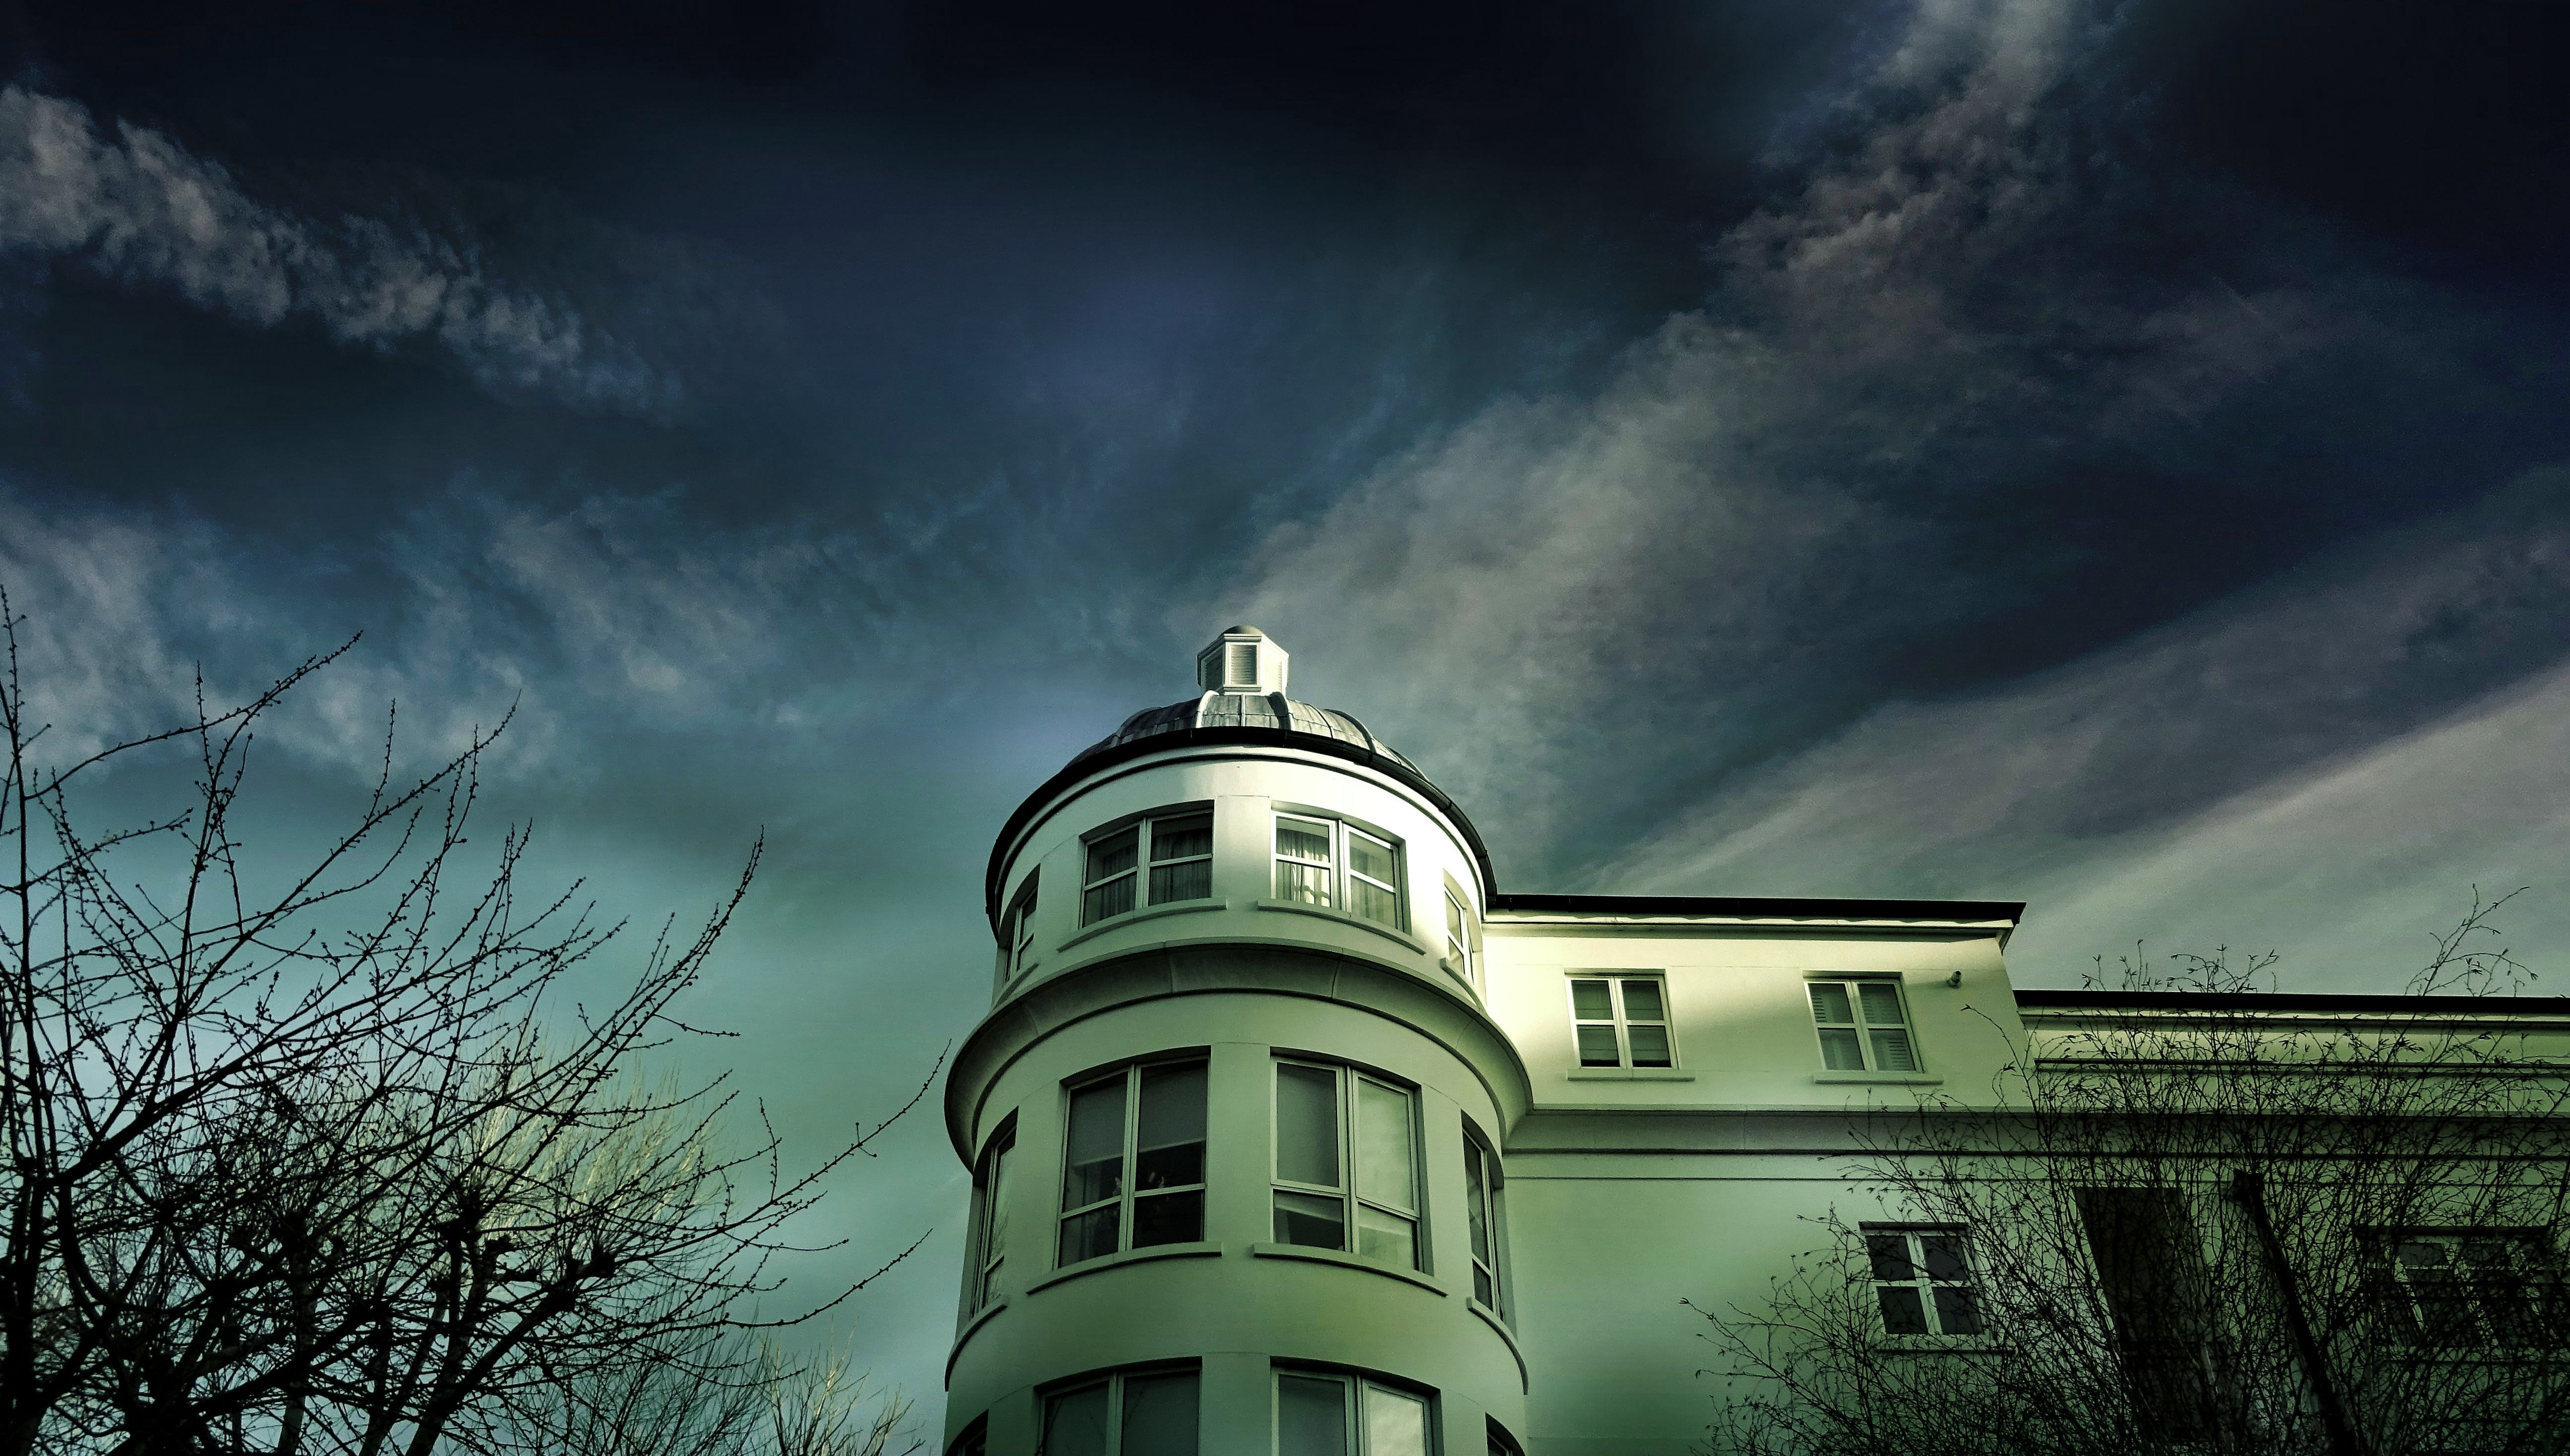 White Painted House Under Cloudy Sky, Architecture, Building, Clouds, Cloudy, HQ Photo